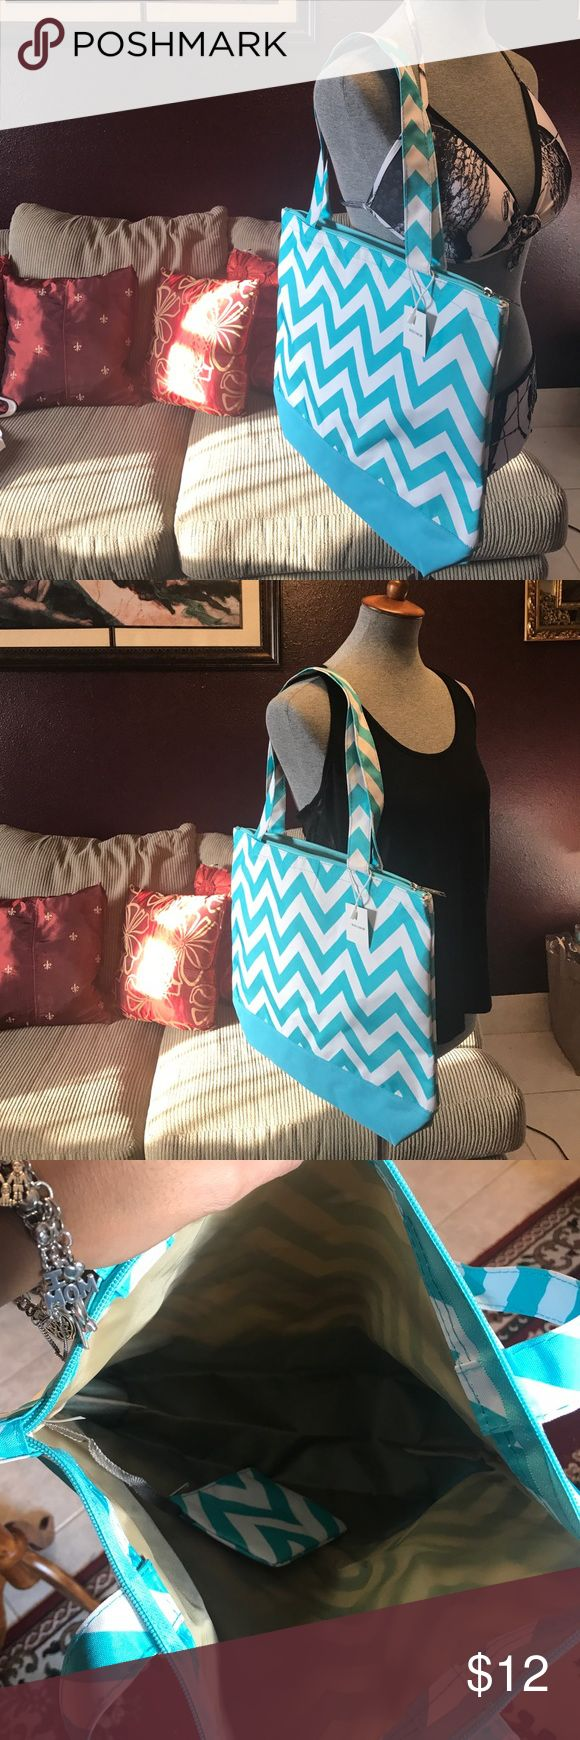 Chevron Turquoise Blue/white Tote Bag Chevron Turquoise blue and white print tote bag. Can be used for different occasions: beach, gym, diaper bag, weekend get away, sleepover, or even to carry books, iPad you decide!!! Has an attached coin bag. Bags Totes